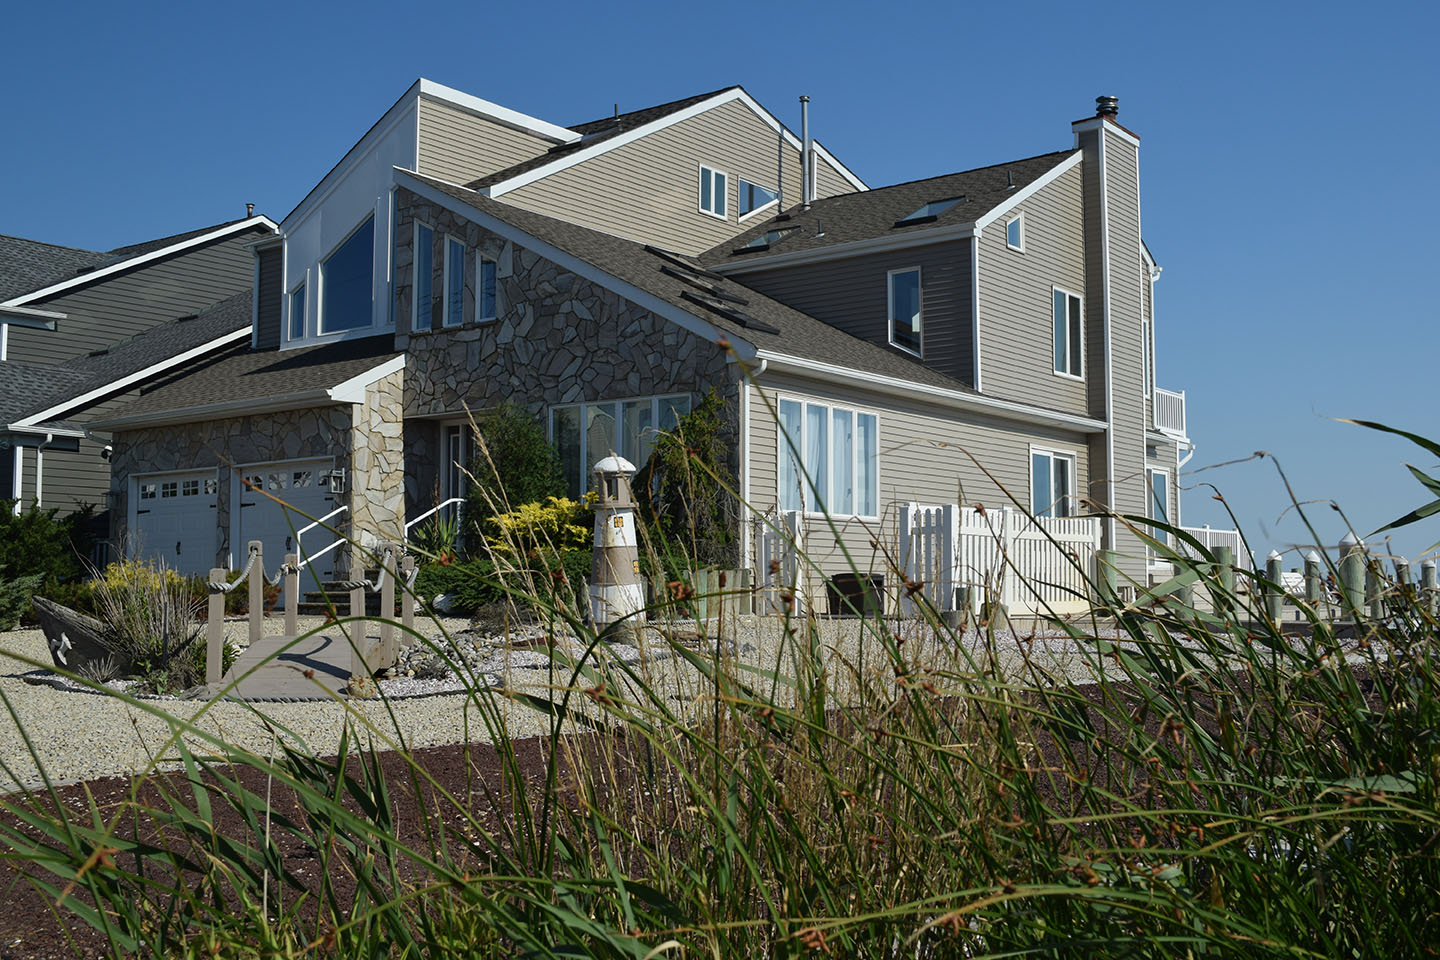 The Brick Township home where 'Jersey Shore' producers sought to film.